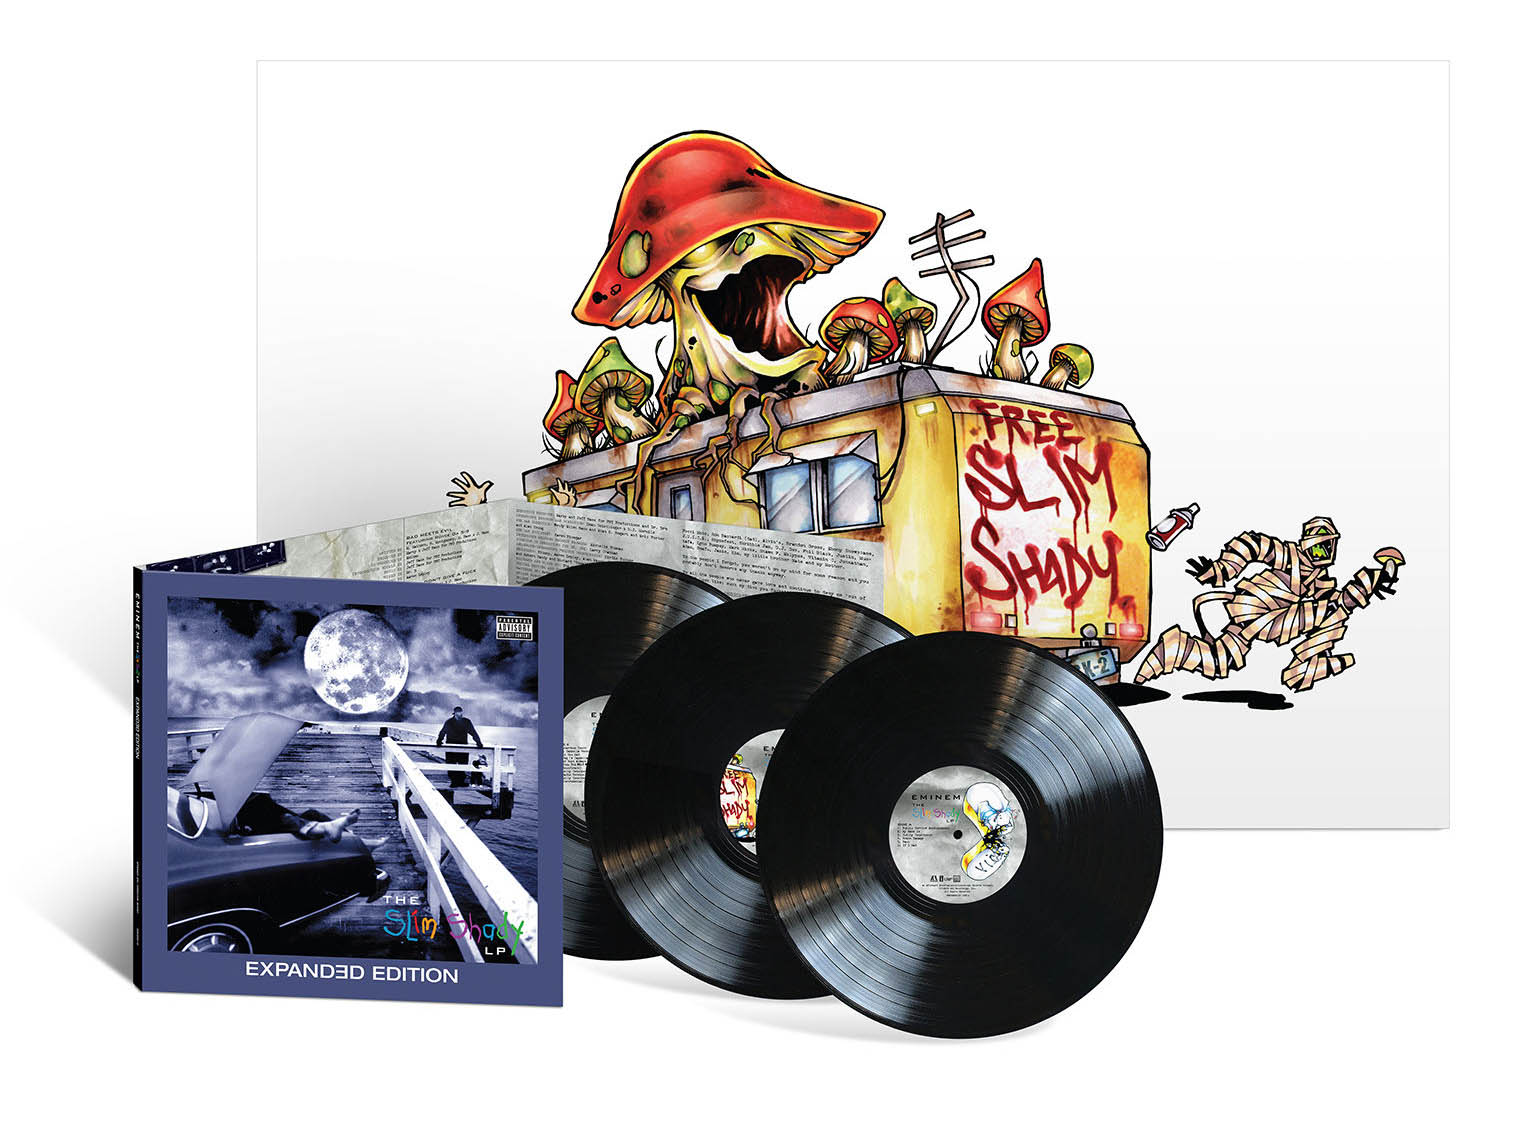 Slim Shady Expanded Edition LP